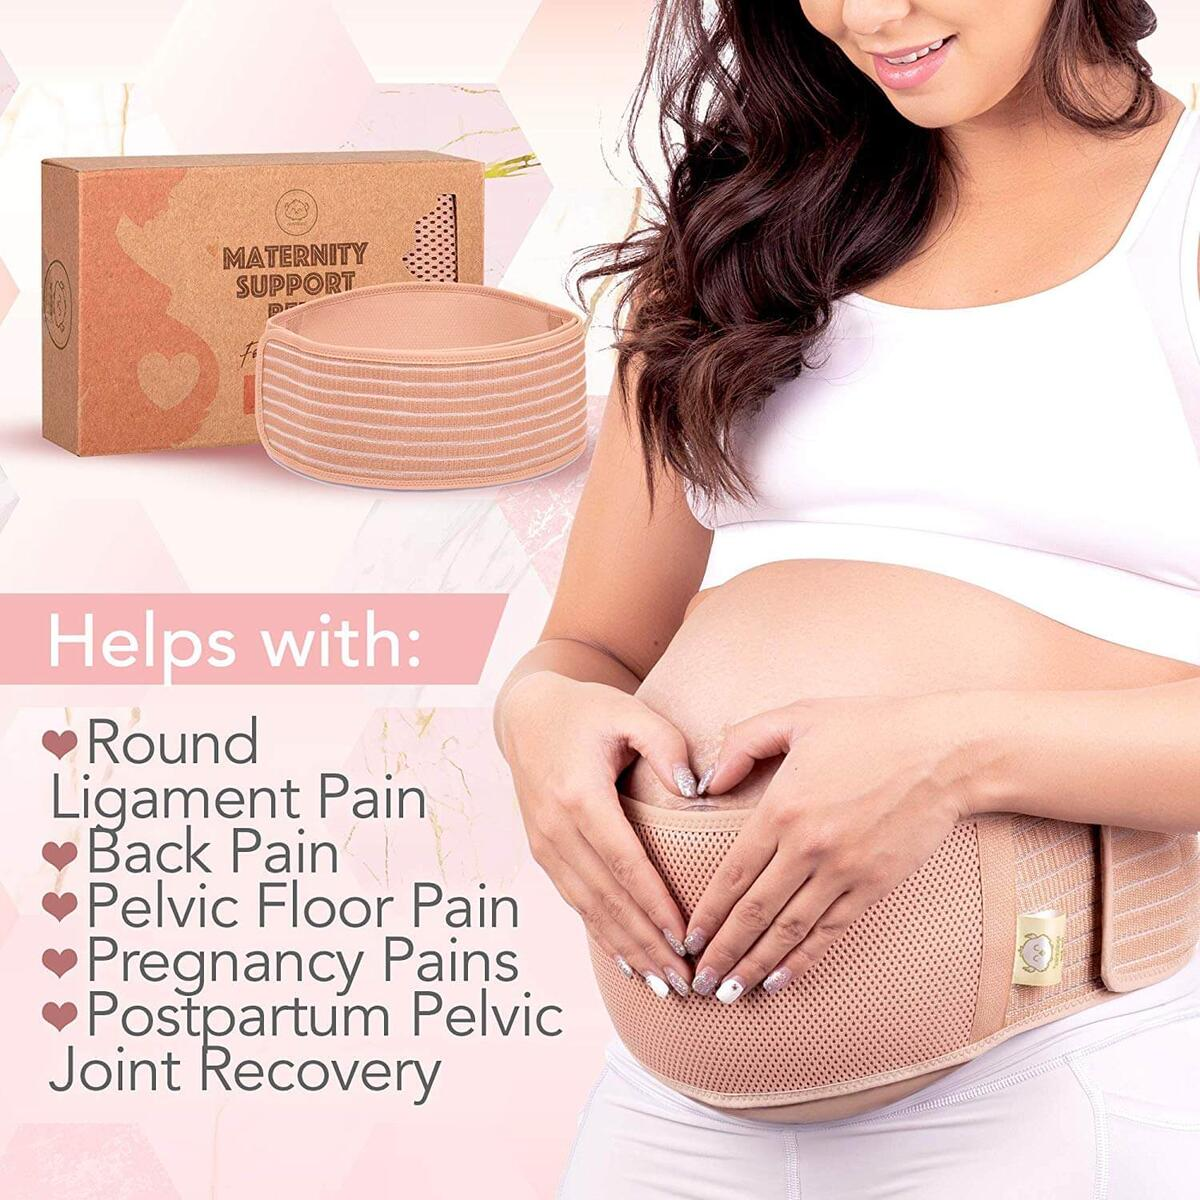 Maternity Belly Band for Pregnancy - Soft & Breathable Pregnancy Belly Support Belt - Pelvic Support Bands - Tummy Bandit Sling for Pants - Pregnancy Back Brace (Classic Ivory, One Size)